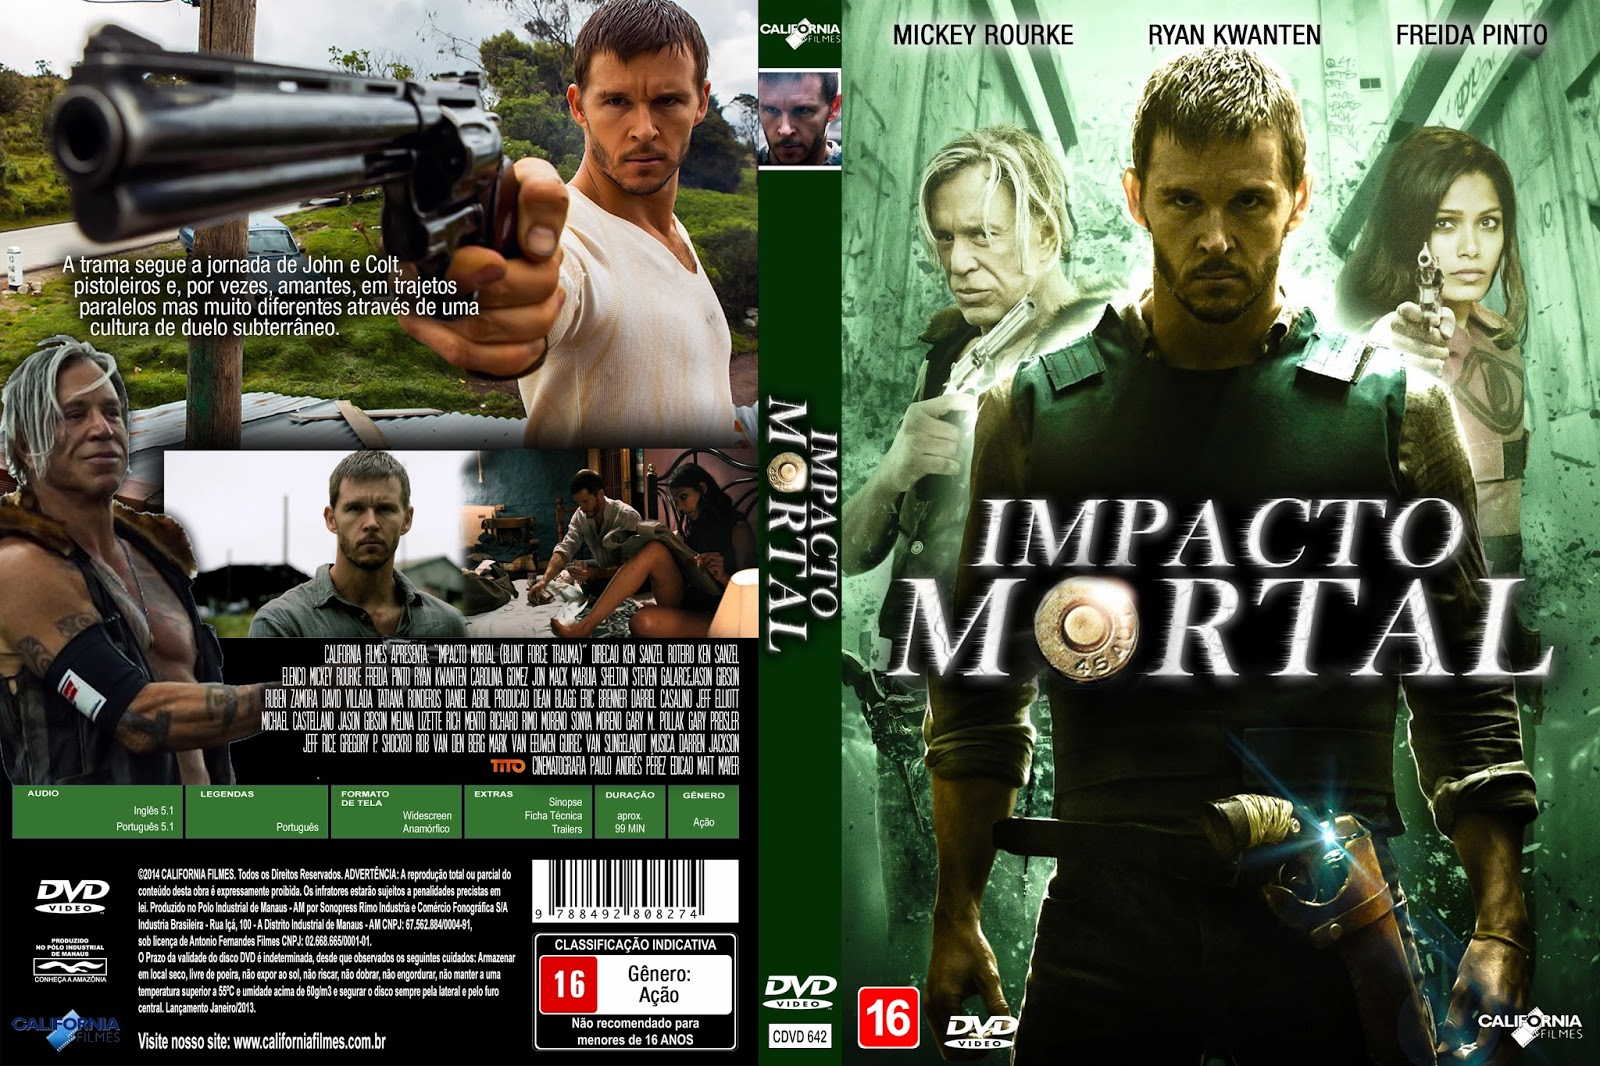 Impacto Mortal BDRip XviD Dual Áudio Impacto 2BMortal 2B  2BXANDAODOWNLOAD